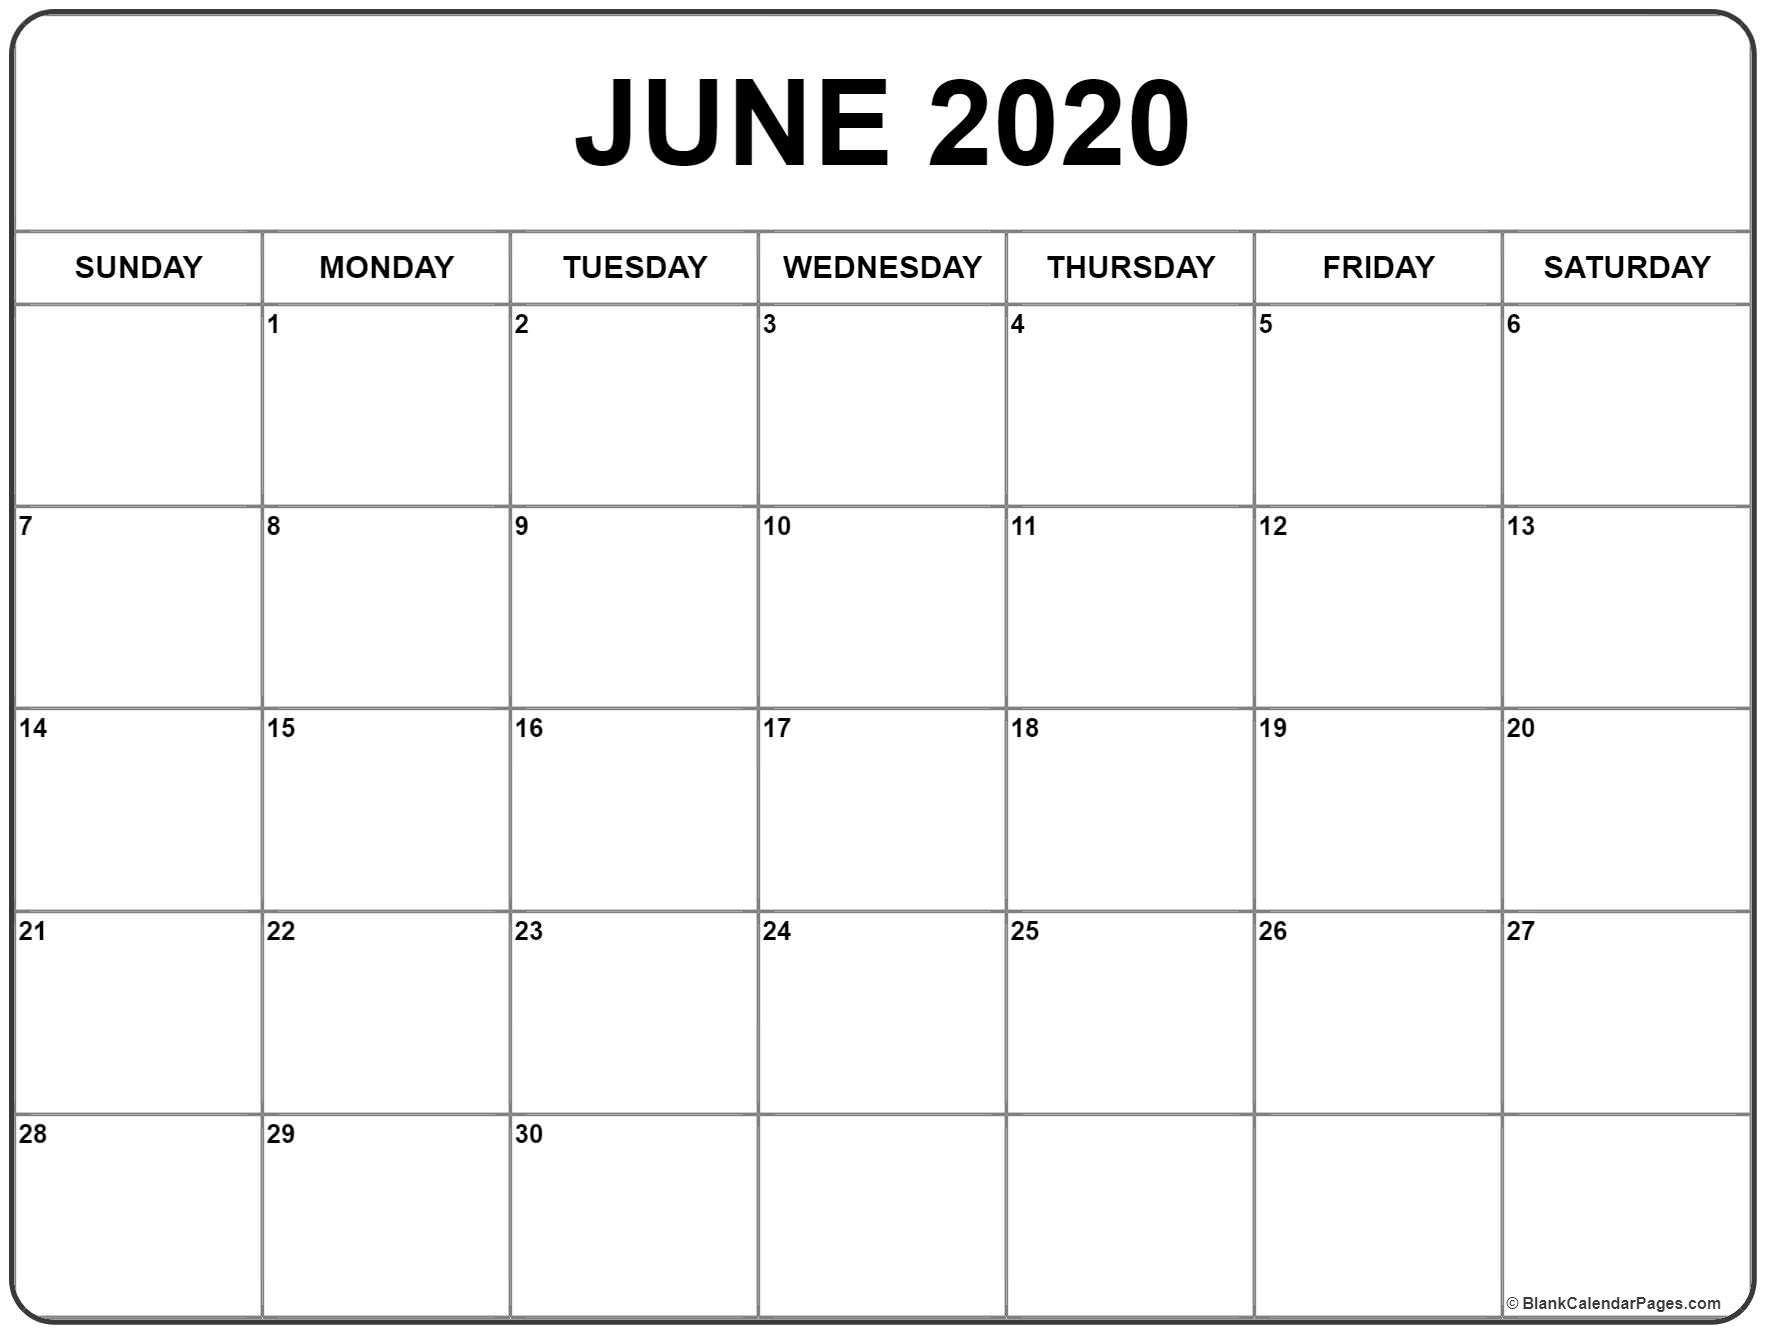 June 2020 Calendar | Free Printable Monthly Calendars with regard to Printable Calendar June 2019 To June 2020